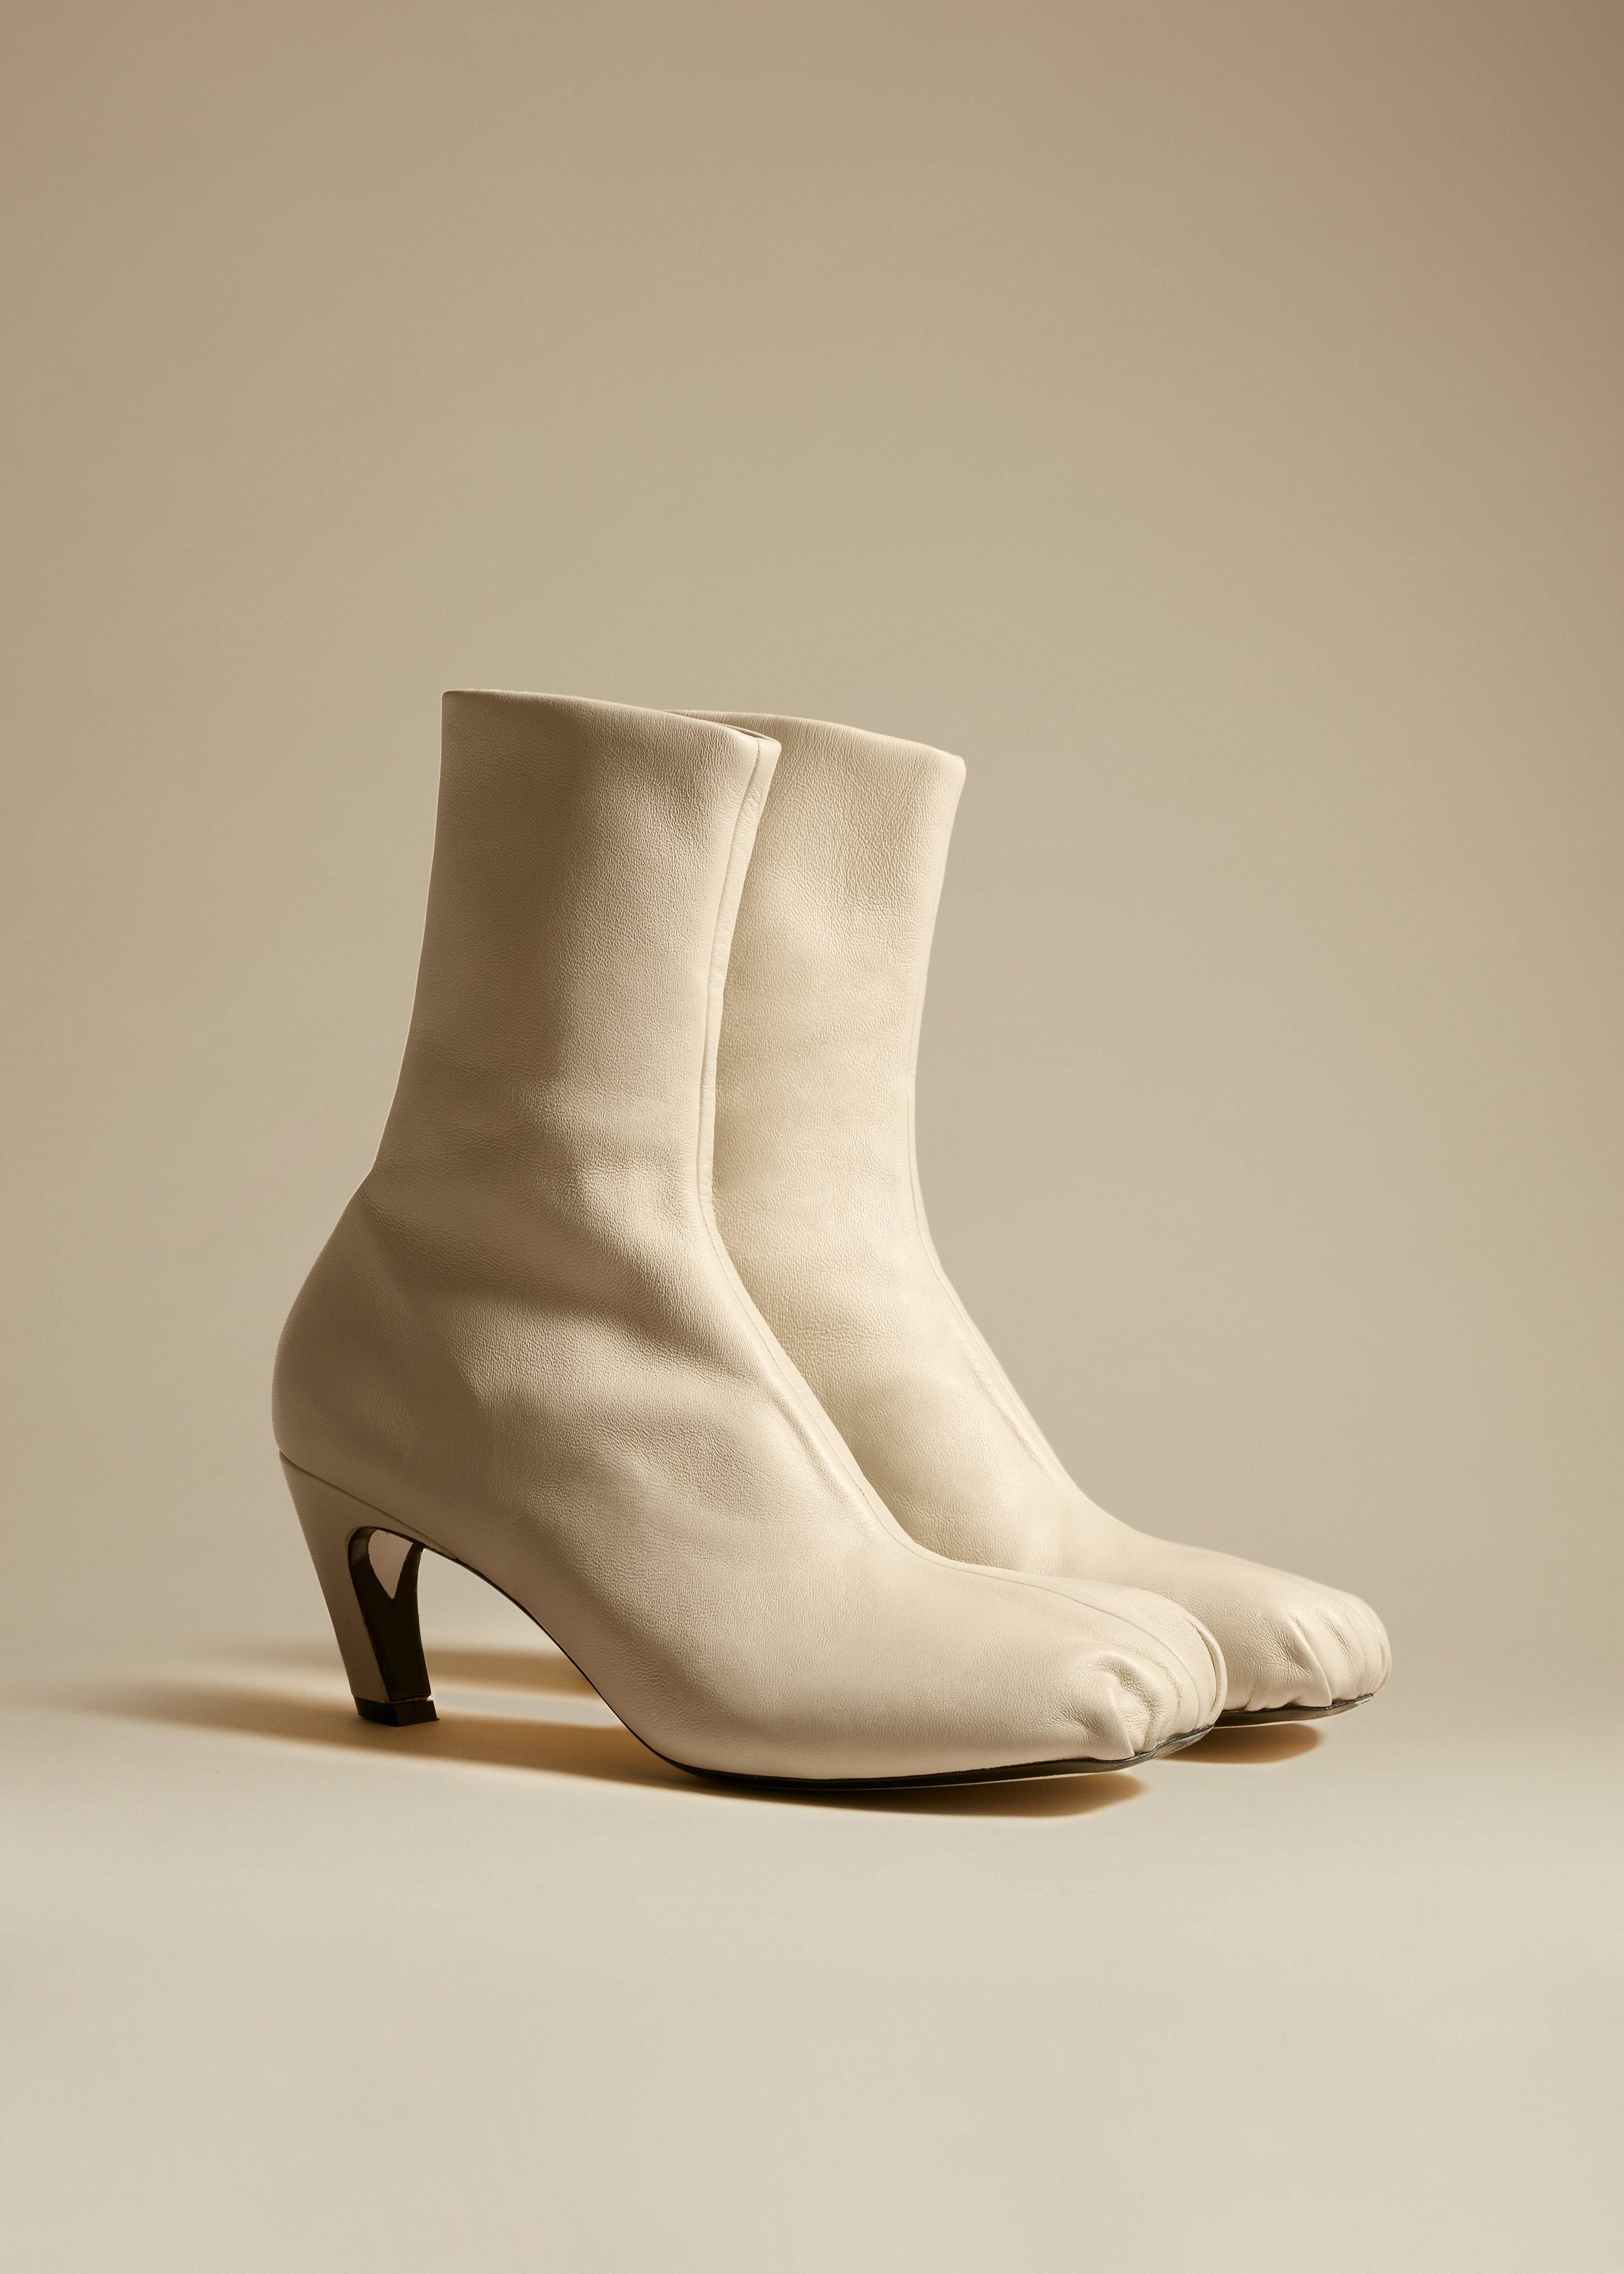 The Normandy Boot in Cream Leather 1